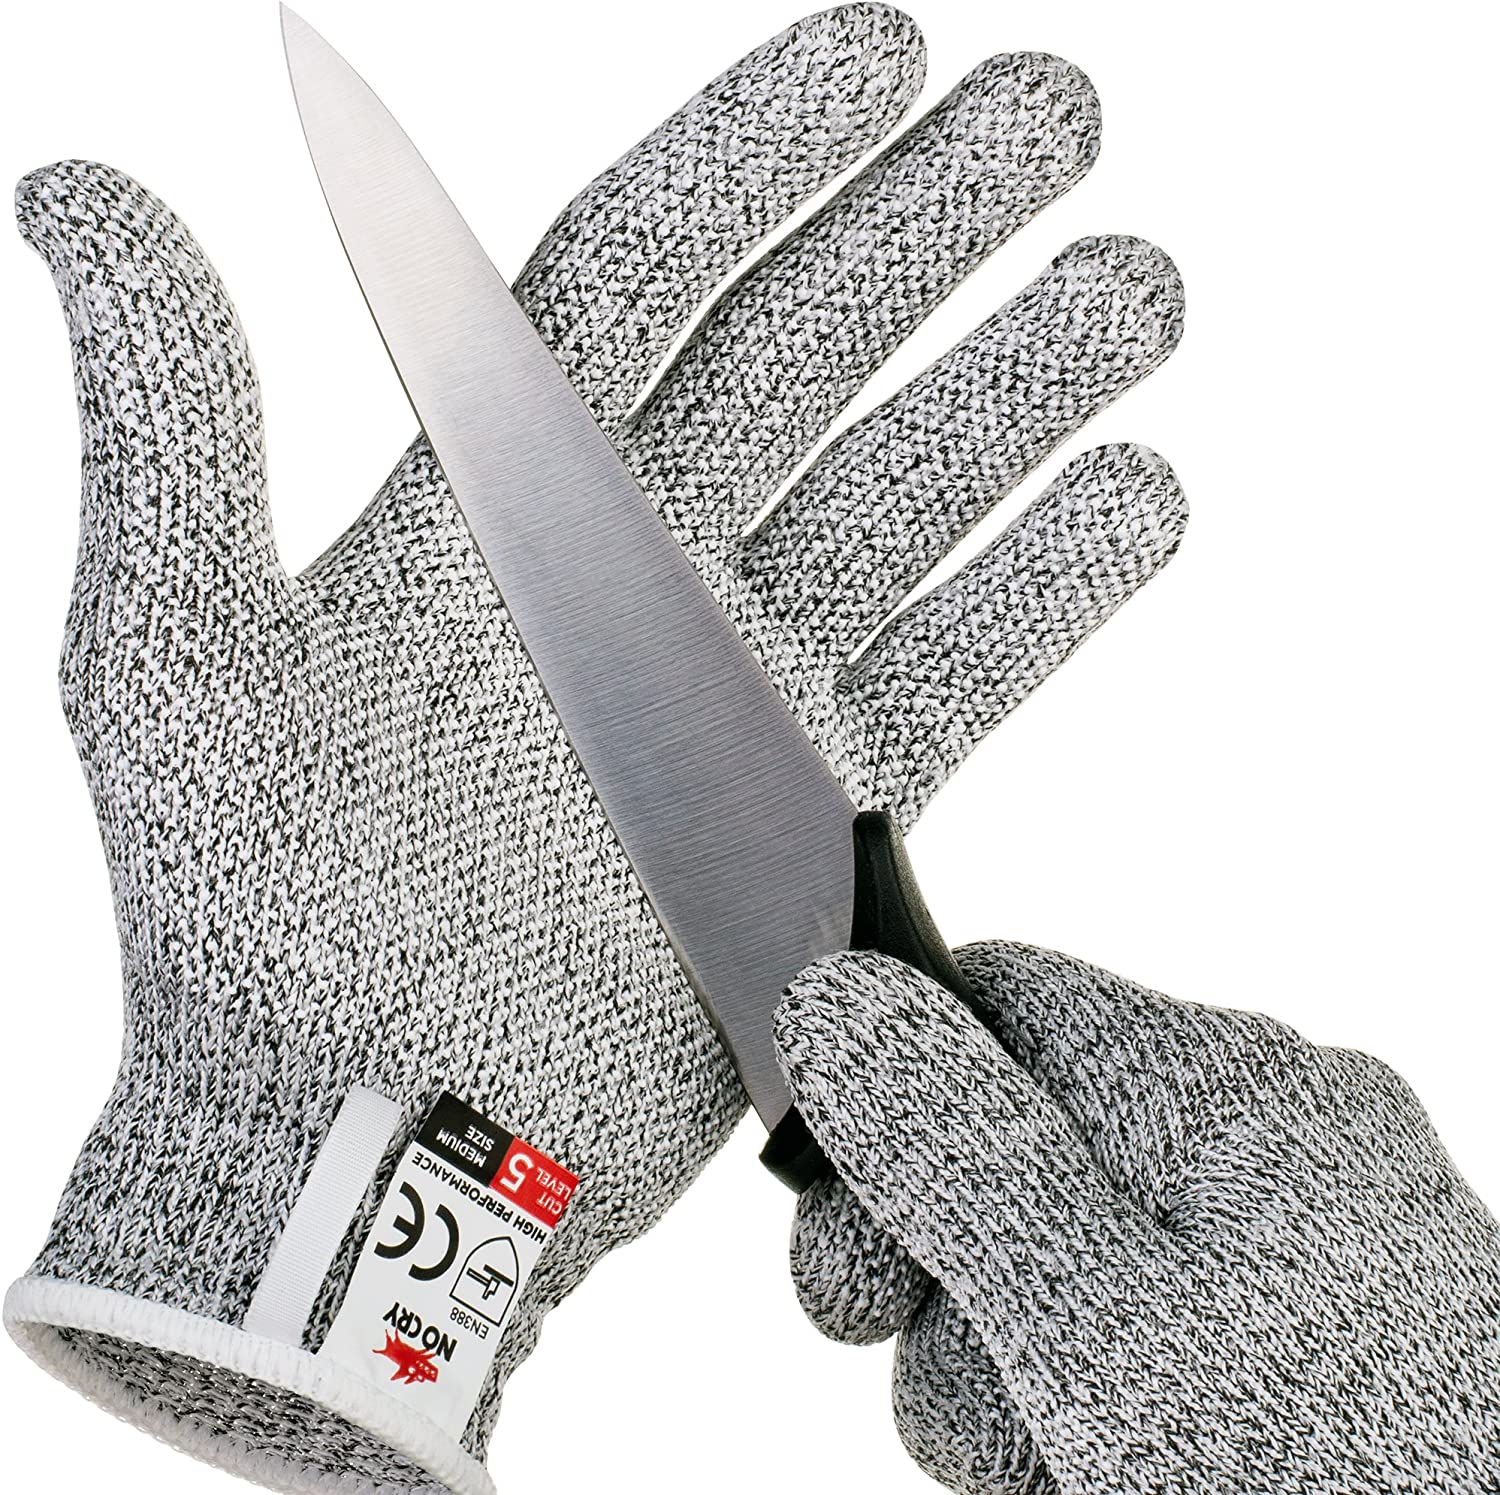 NoCry Cut Resistant Gloves with Grip Dots - High Performance Level 5 Protection, Food Grade. Size Large, Free Ebook Included! - -